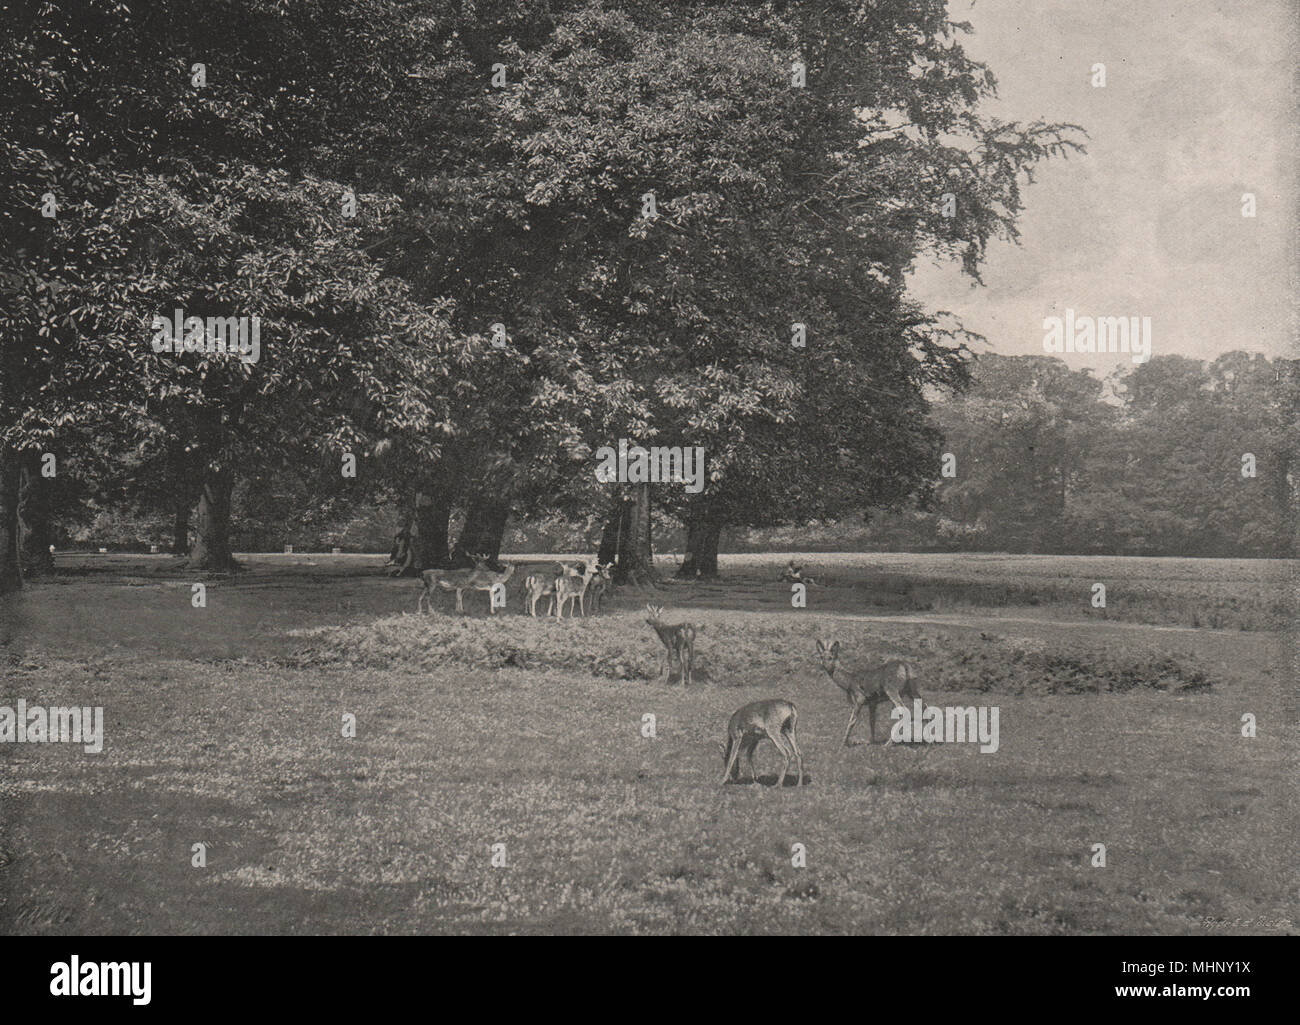 Richmond Park London 1896 Old Antique Vintage Print Picture Stock Photo Alamy